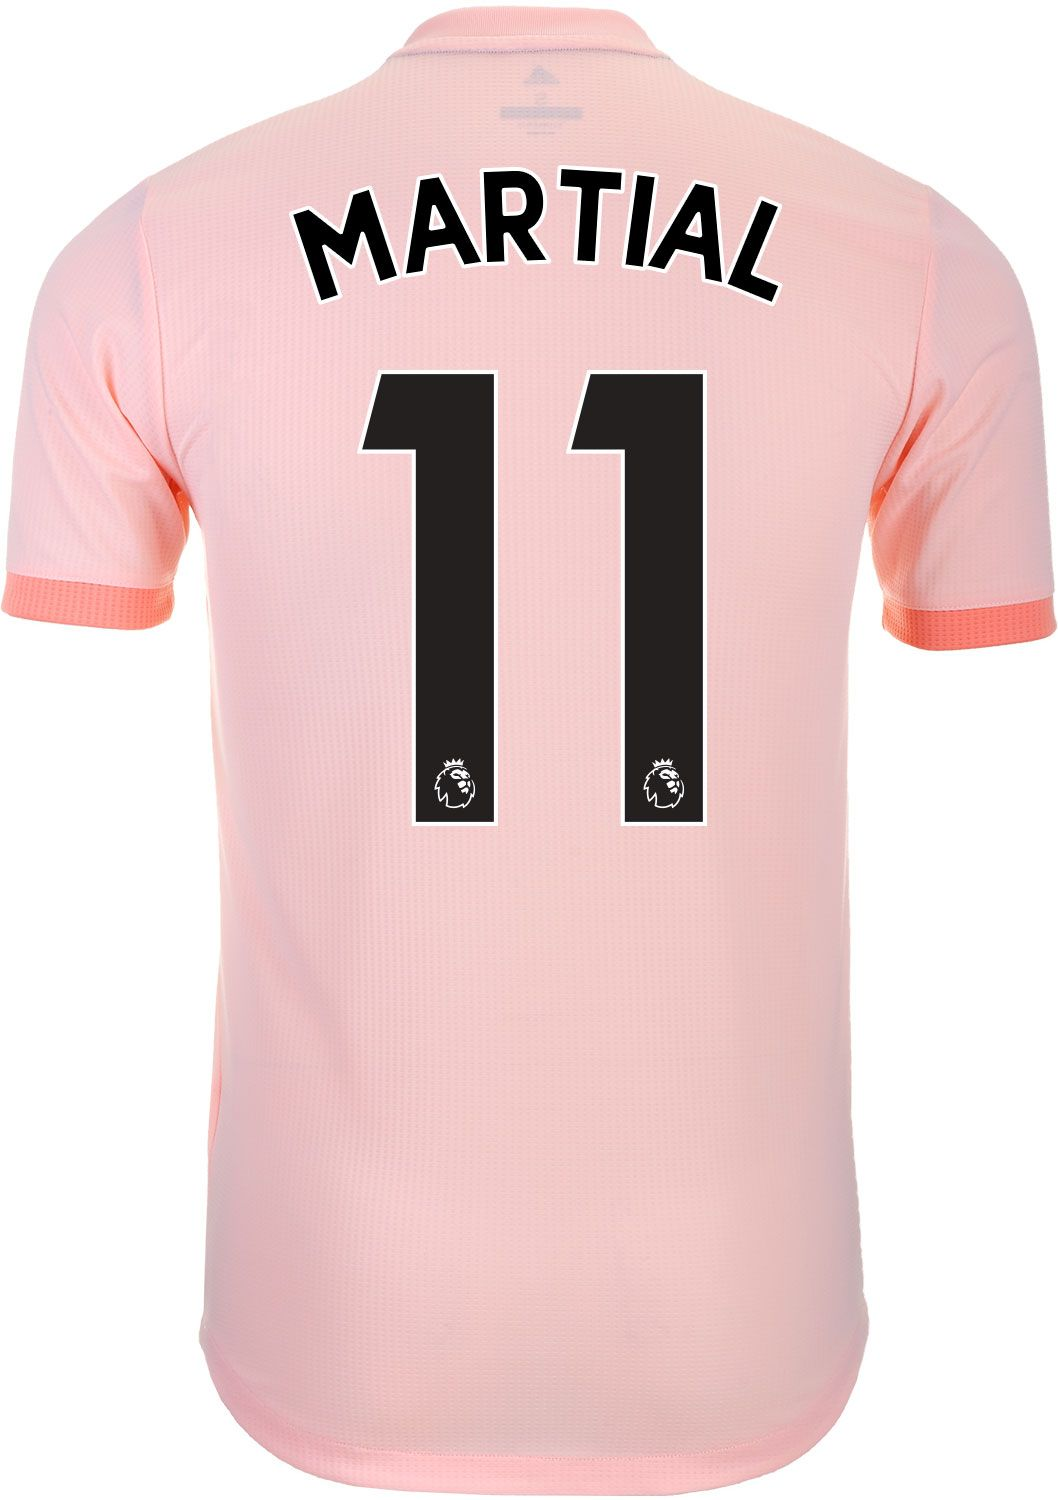 fa0697588 Shop for the 2018 19 adidas Martial Manchester United authentic away jersey  from www.soccerpro.com